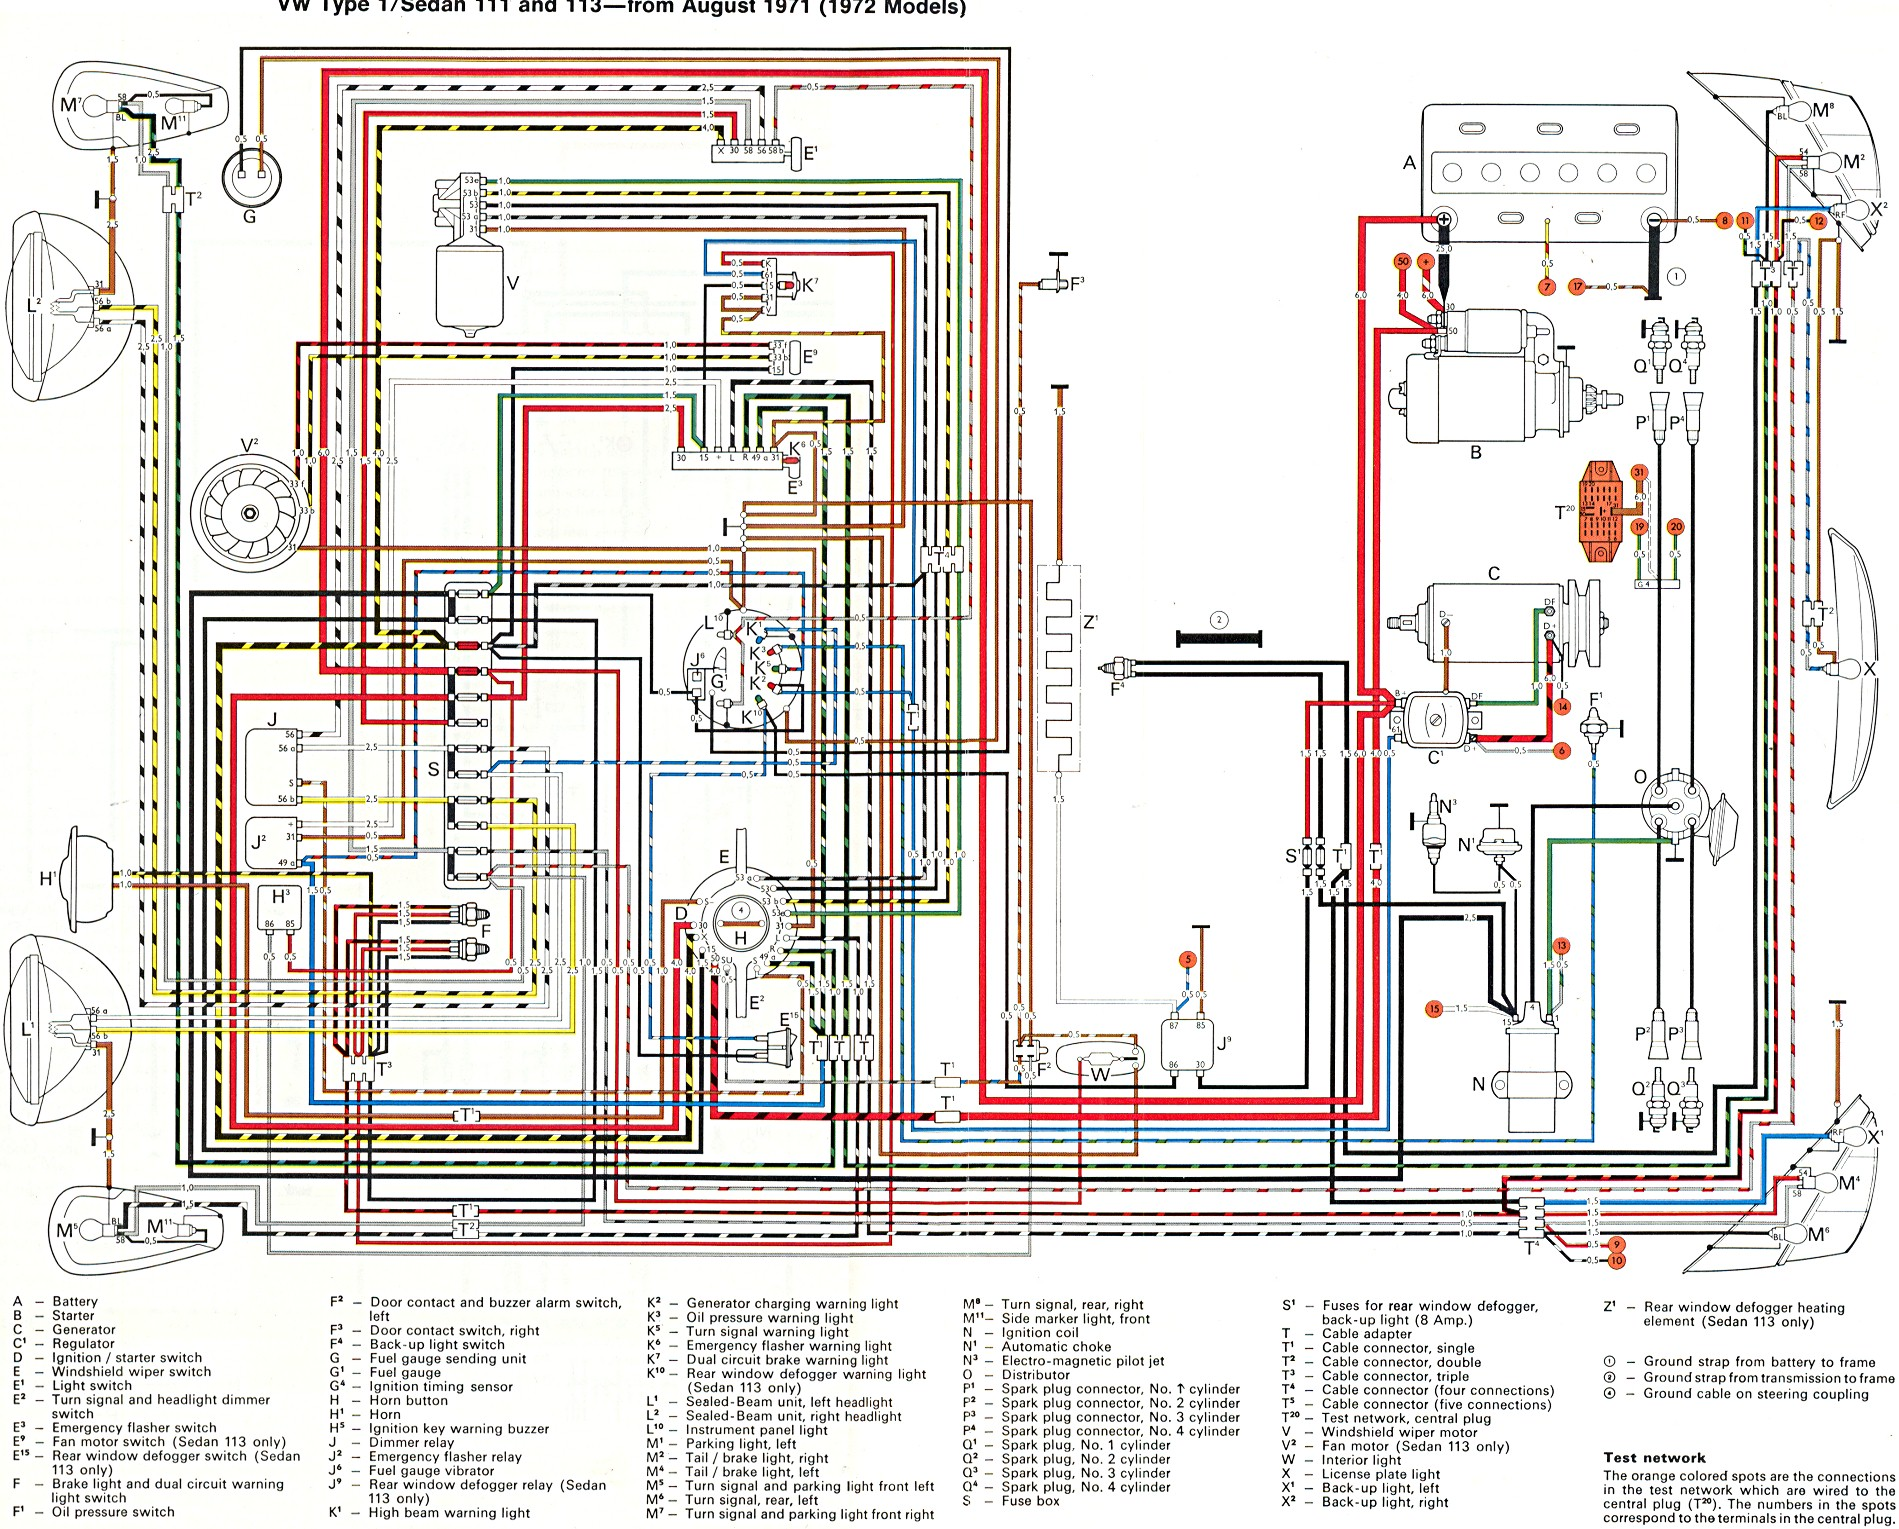 72 beetle engine diagram 1600cc beetle engine diagram starter thesamba.com :: beetle - late model/super - 1968-up - view ...